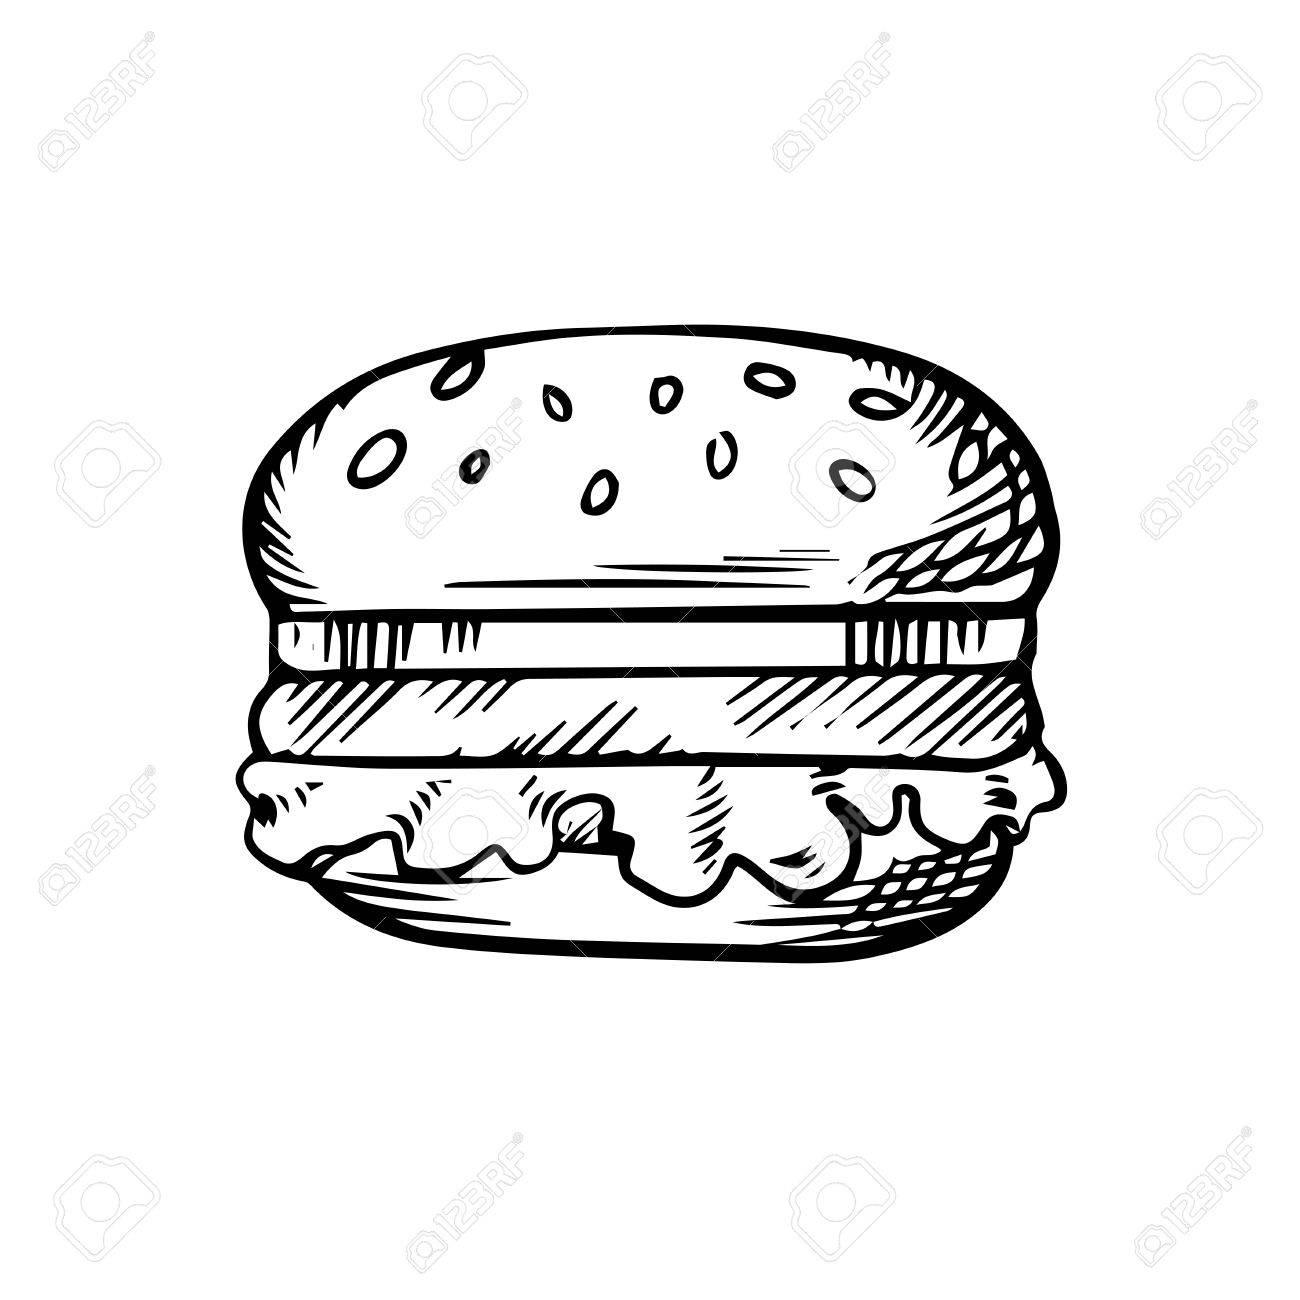 1300x1300 Blacknd White Sketch Of Hamburger With Beef Patty On